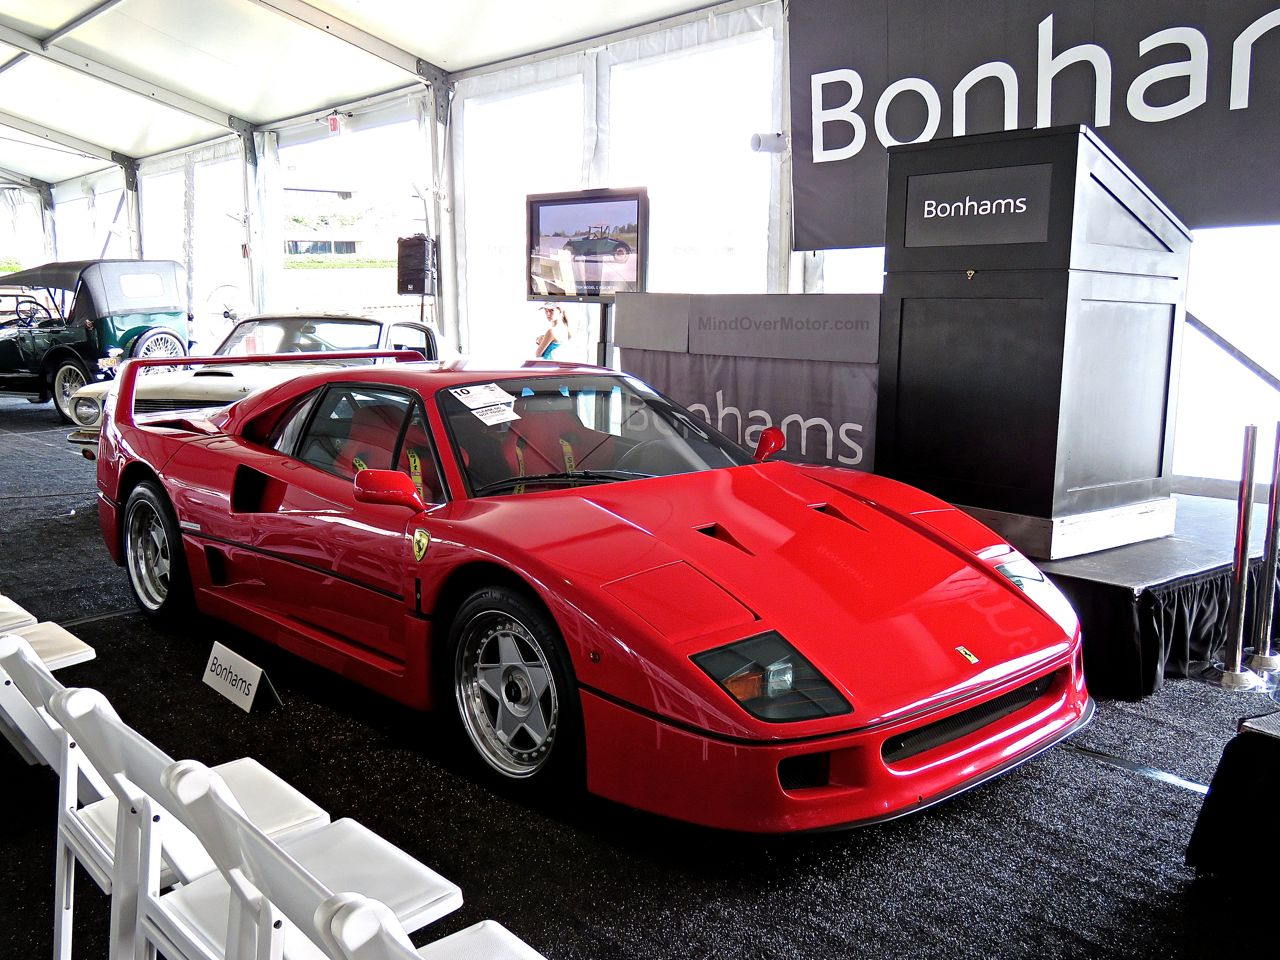 Ferrari F40 Greenwich Bonhams